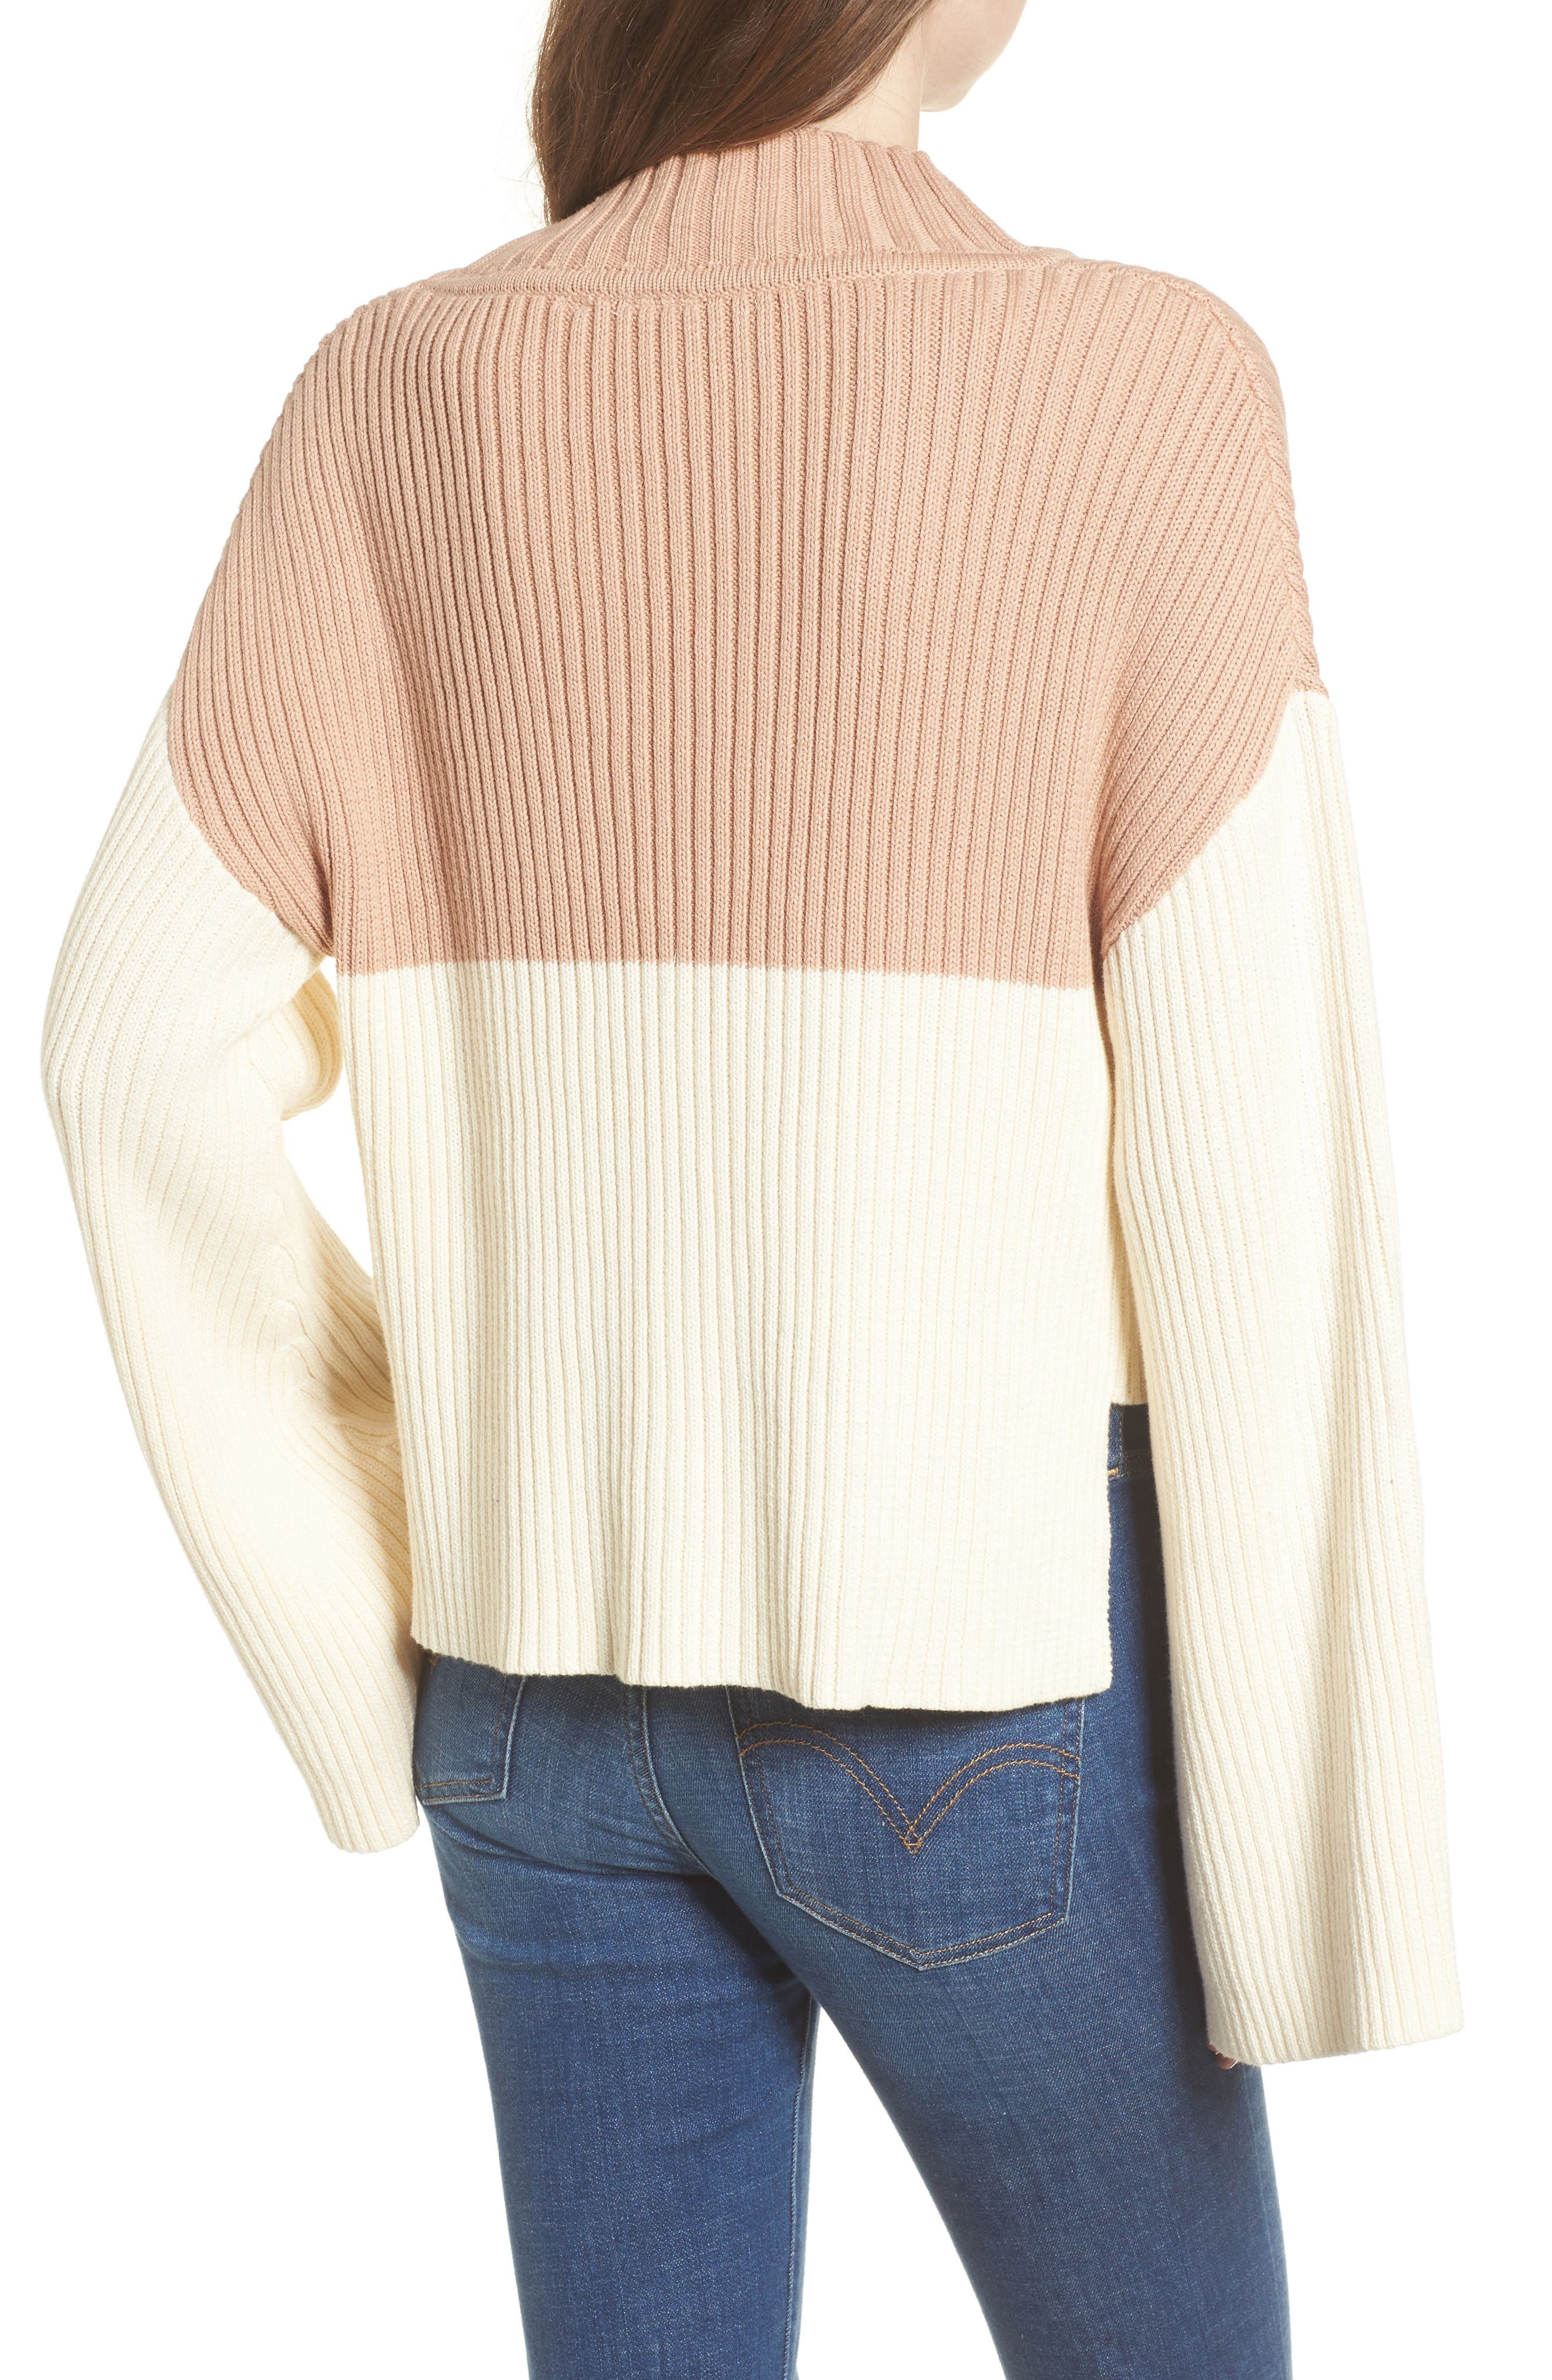 Like a Melody Colorblock Crop Sweater,                             Alternate thumbnail 2, color,                             Cream/ Dusty Pink